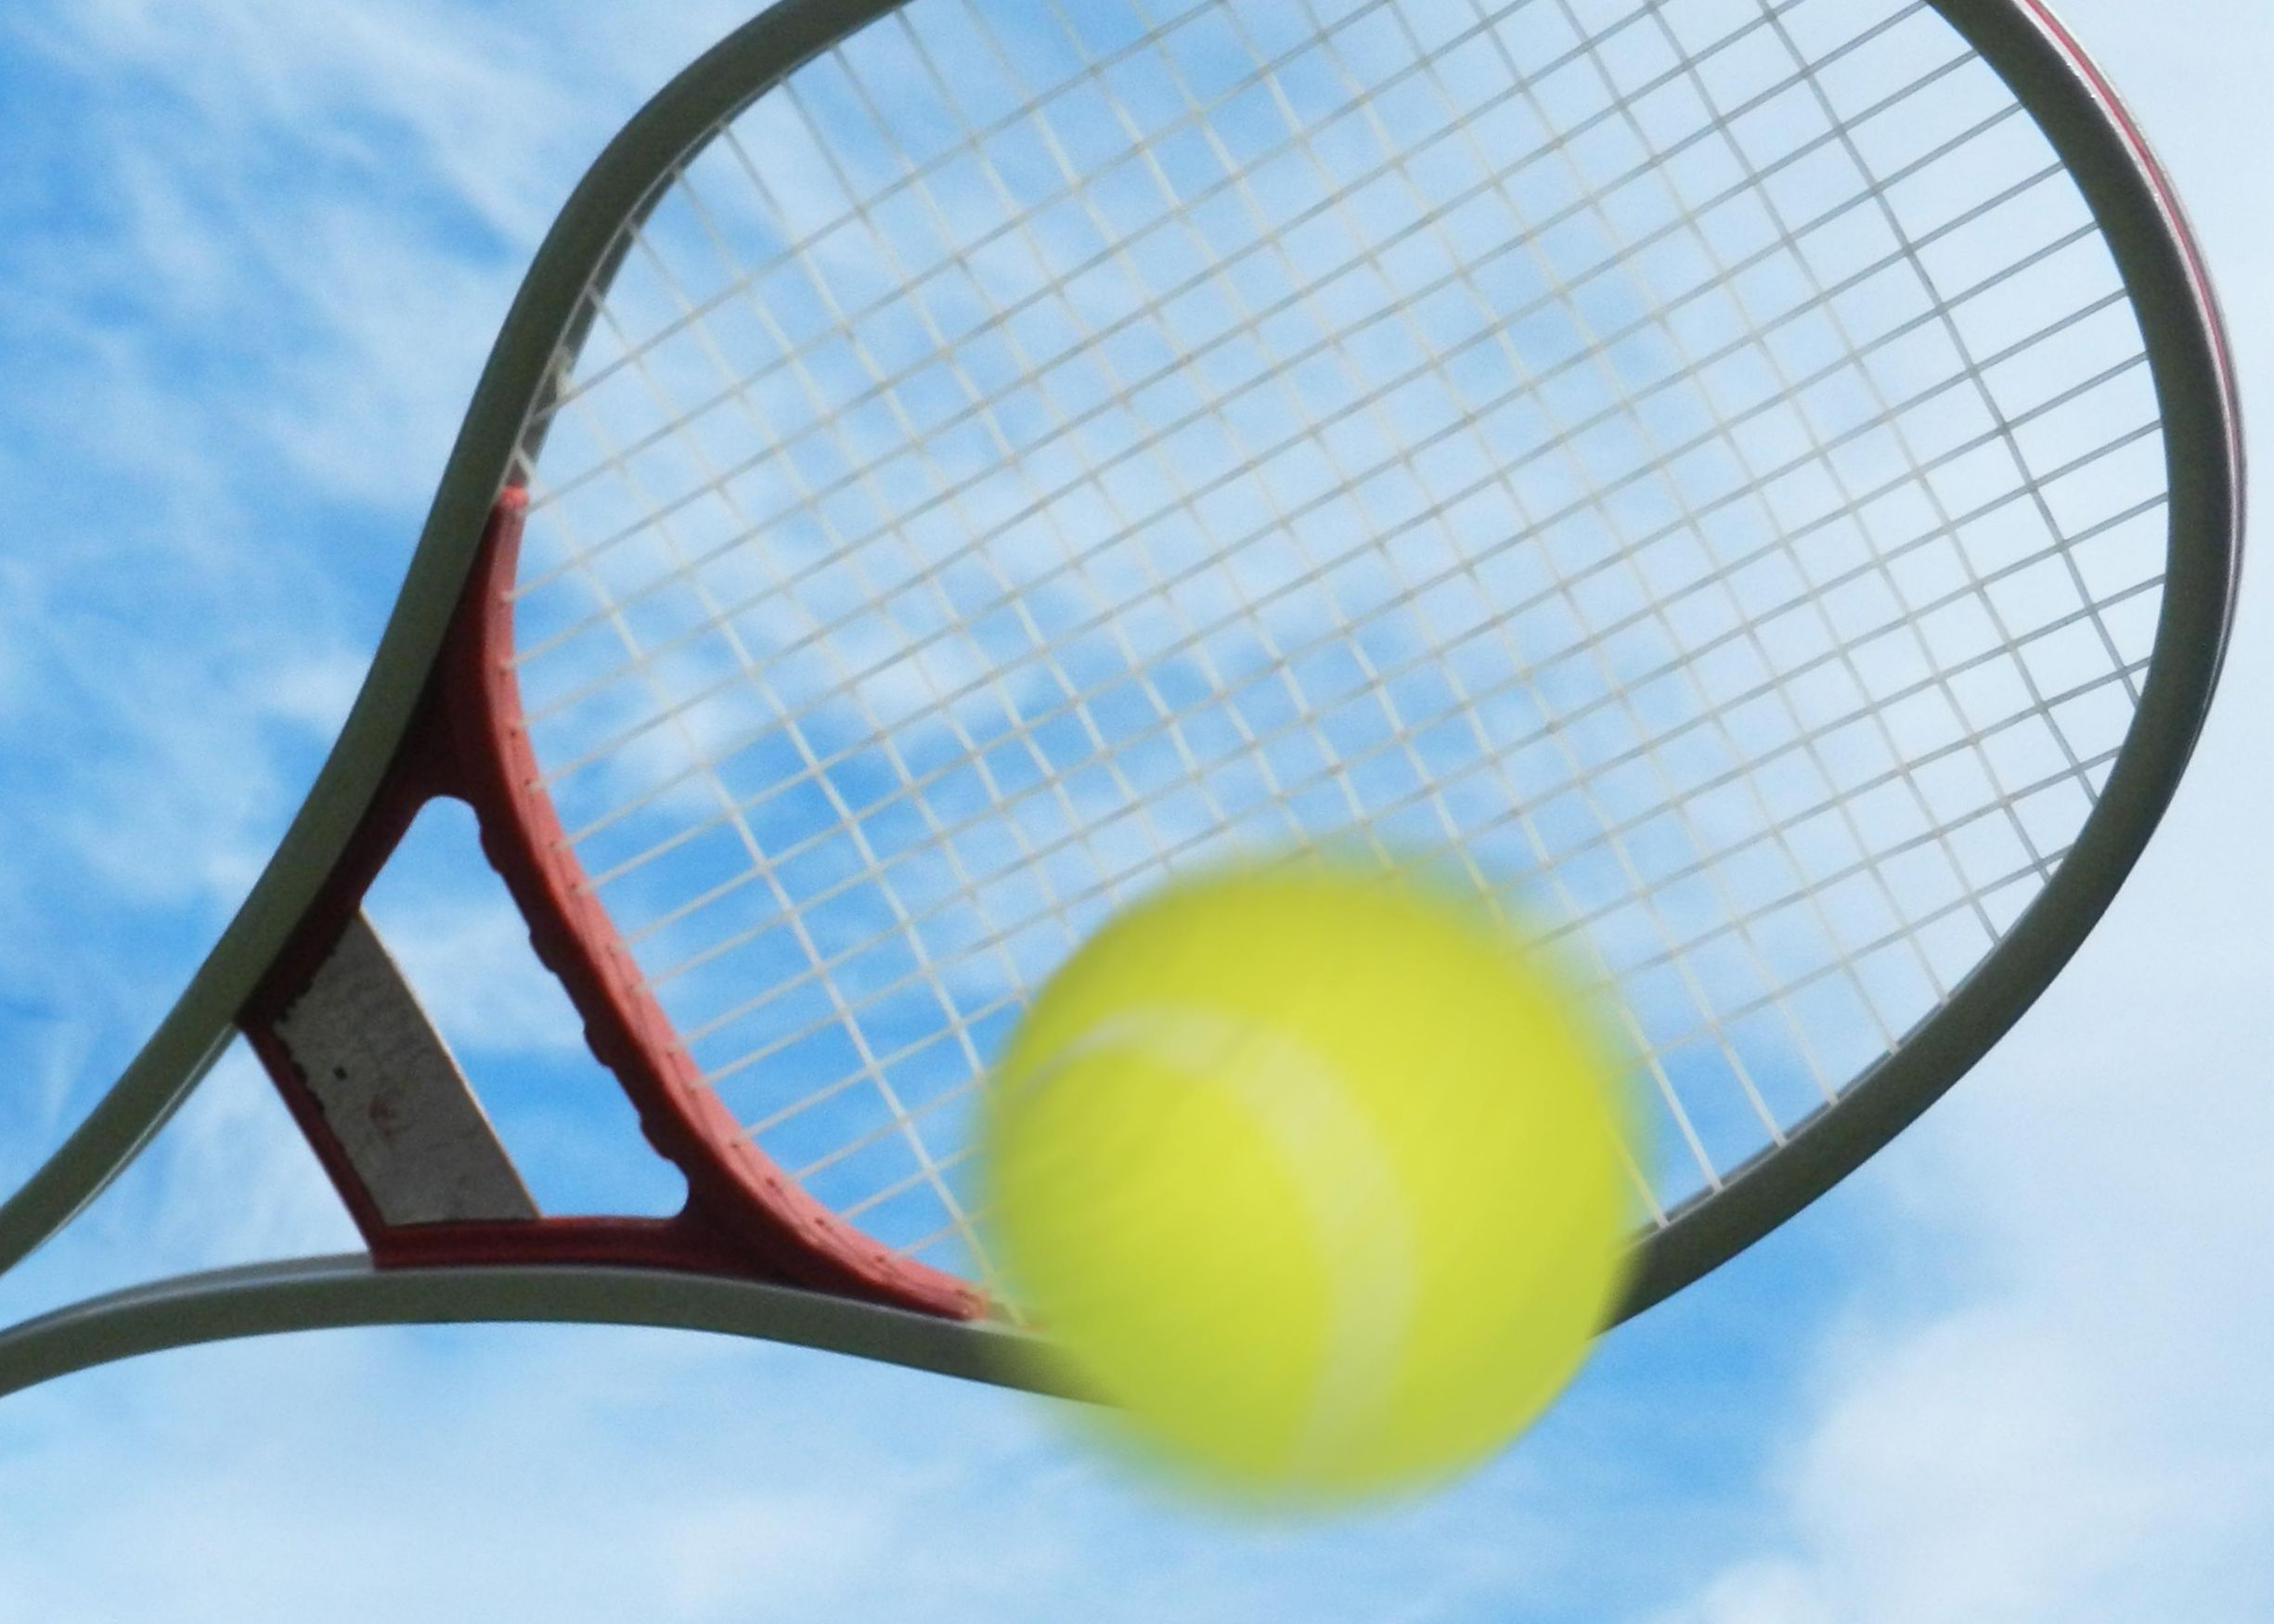 Homepage des Tennisvereins TV Rellinghausen Tennis, Essen